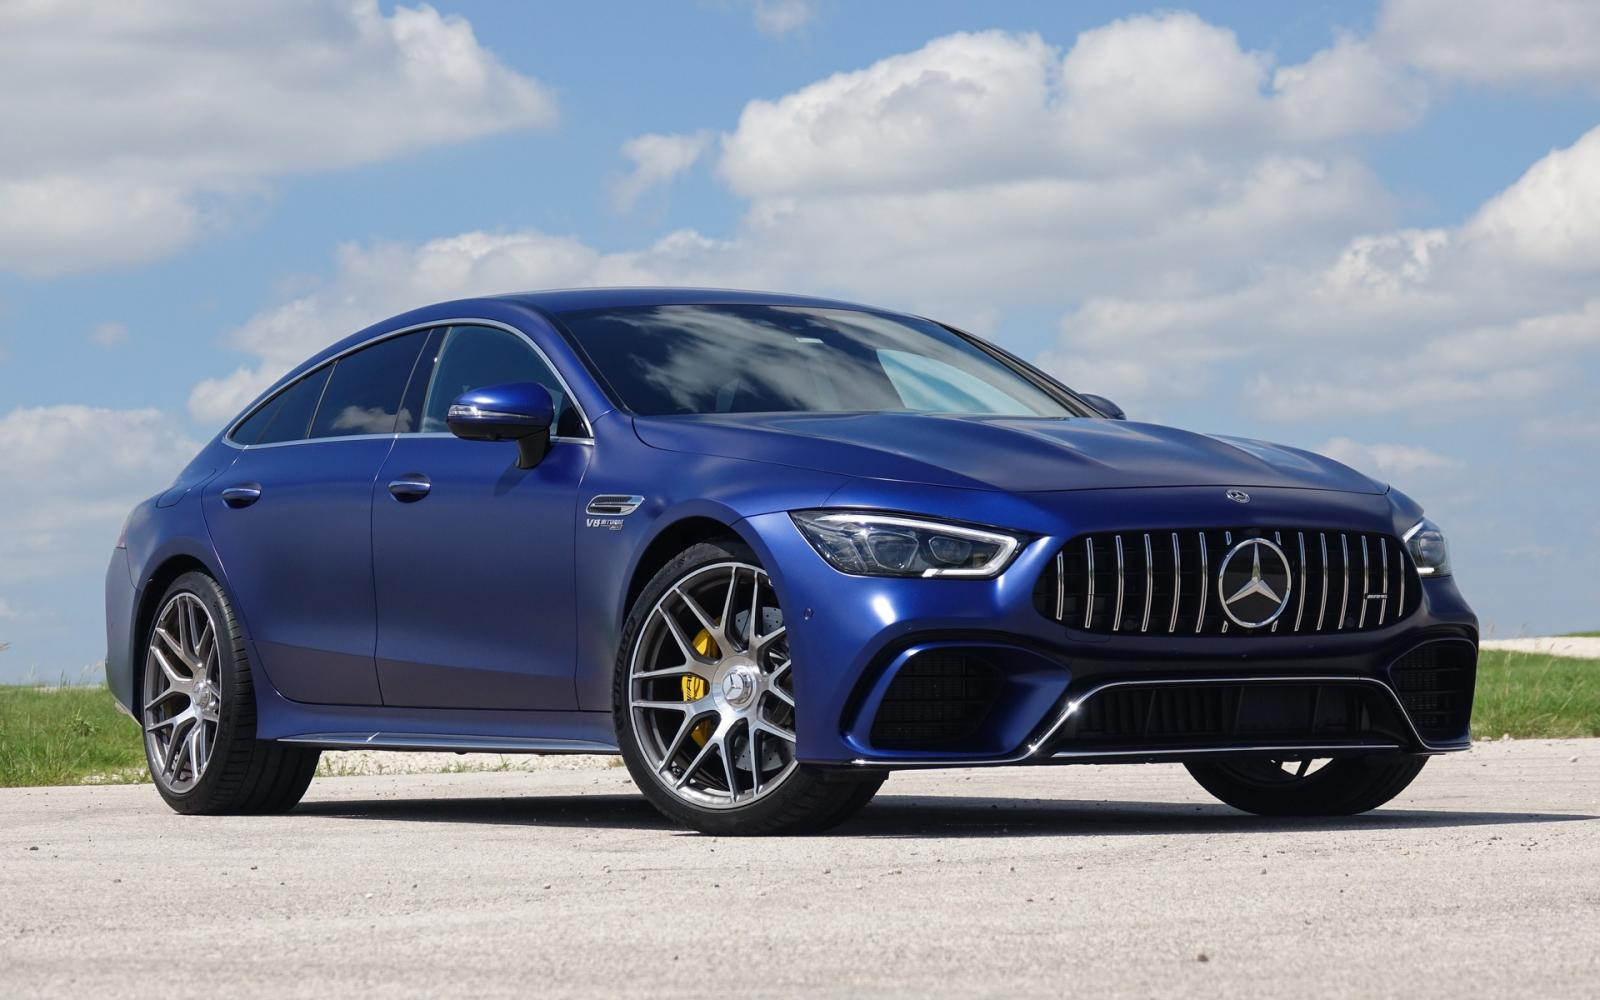 Mercedes-AMG GT 63 S 4-Door Coupé